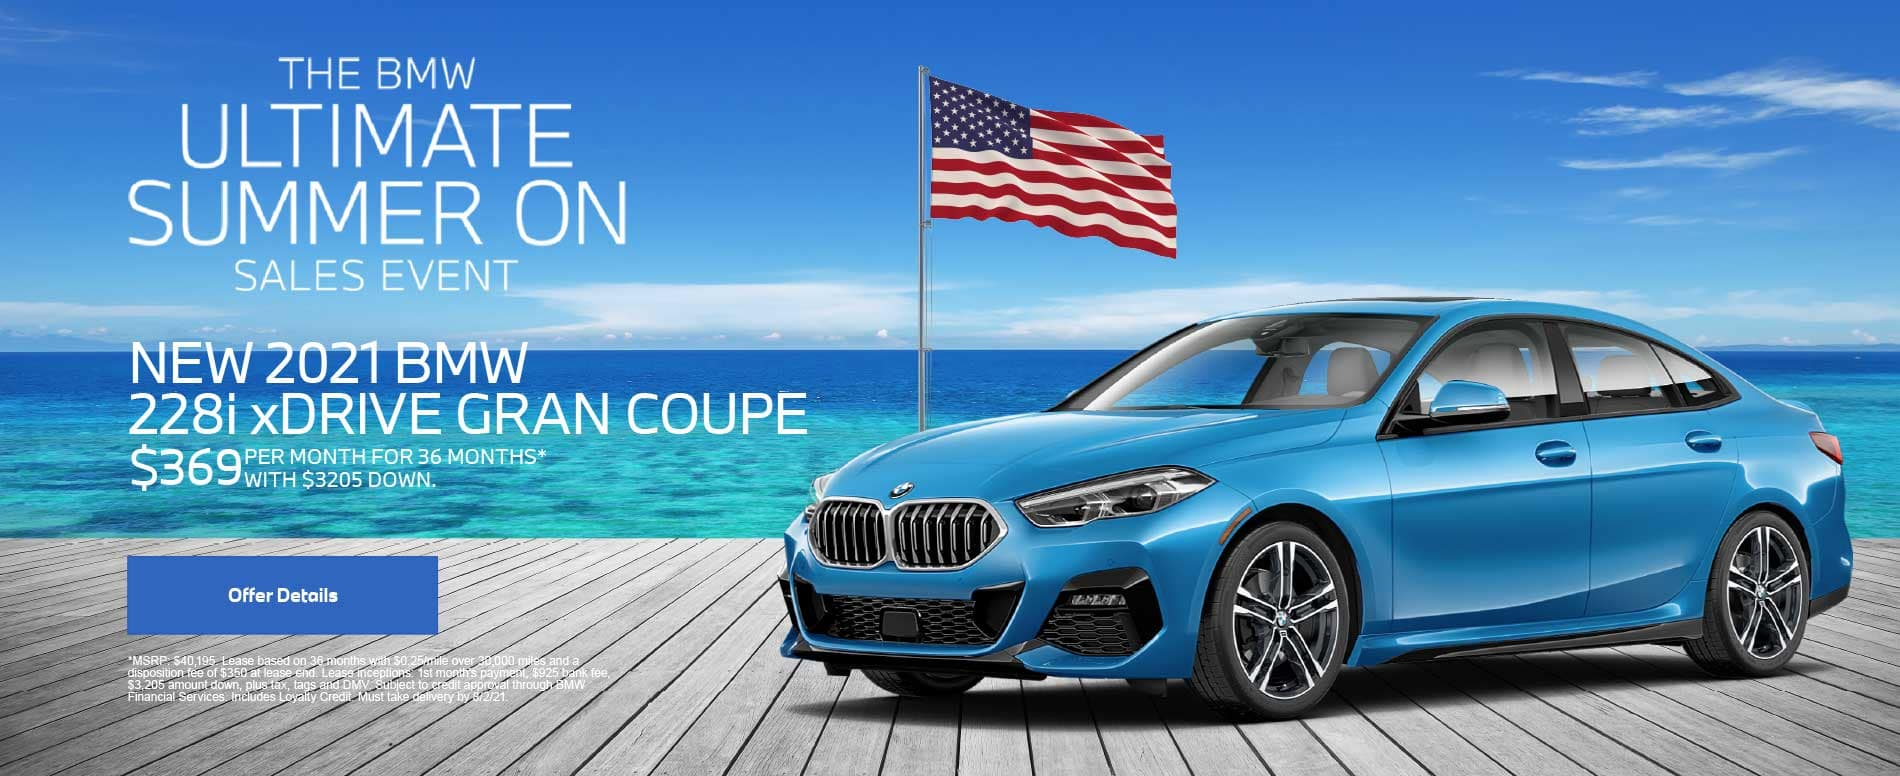 NEW 2021 BMW 228i xDRIVE GRAN COUPE $369 PER MONTH FOR 36 MONTHS* WITH $3205 DOWN.